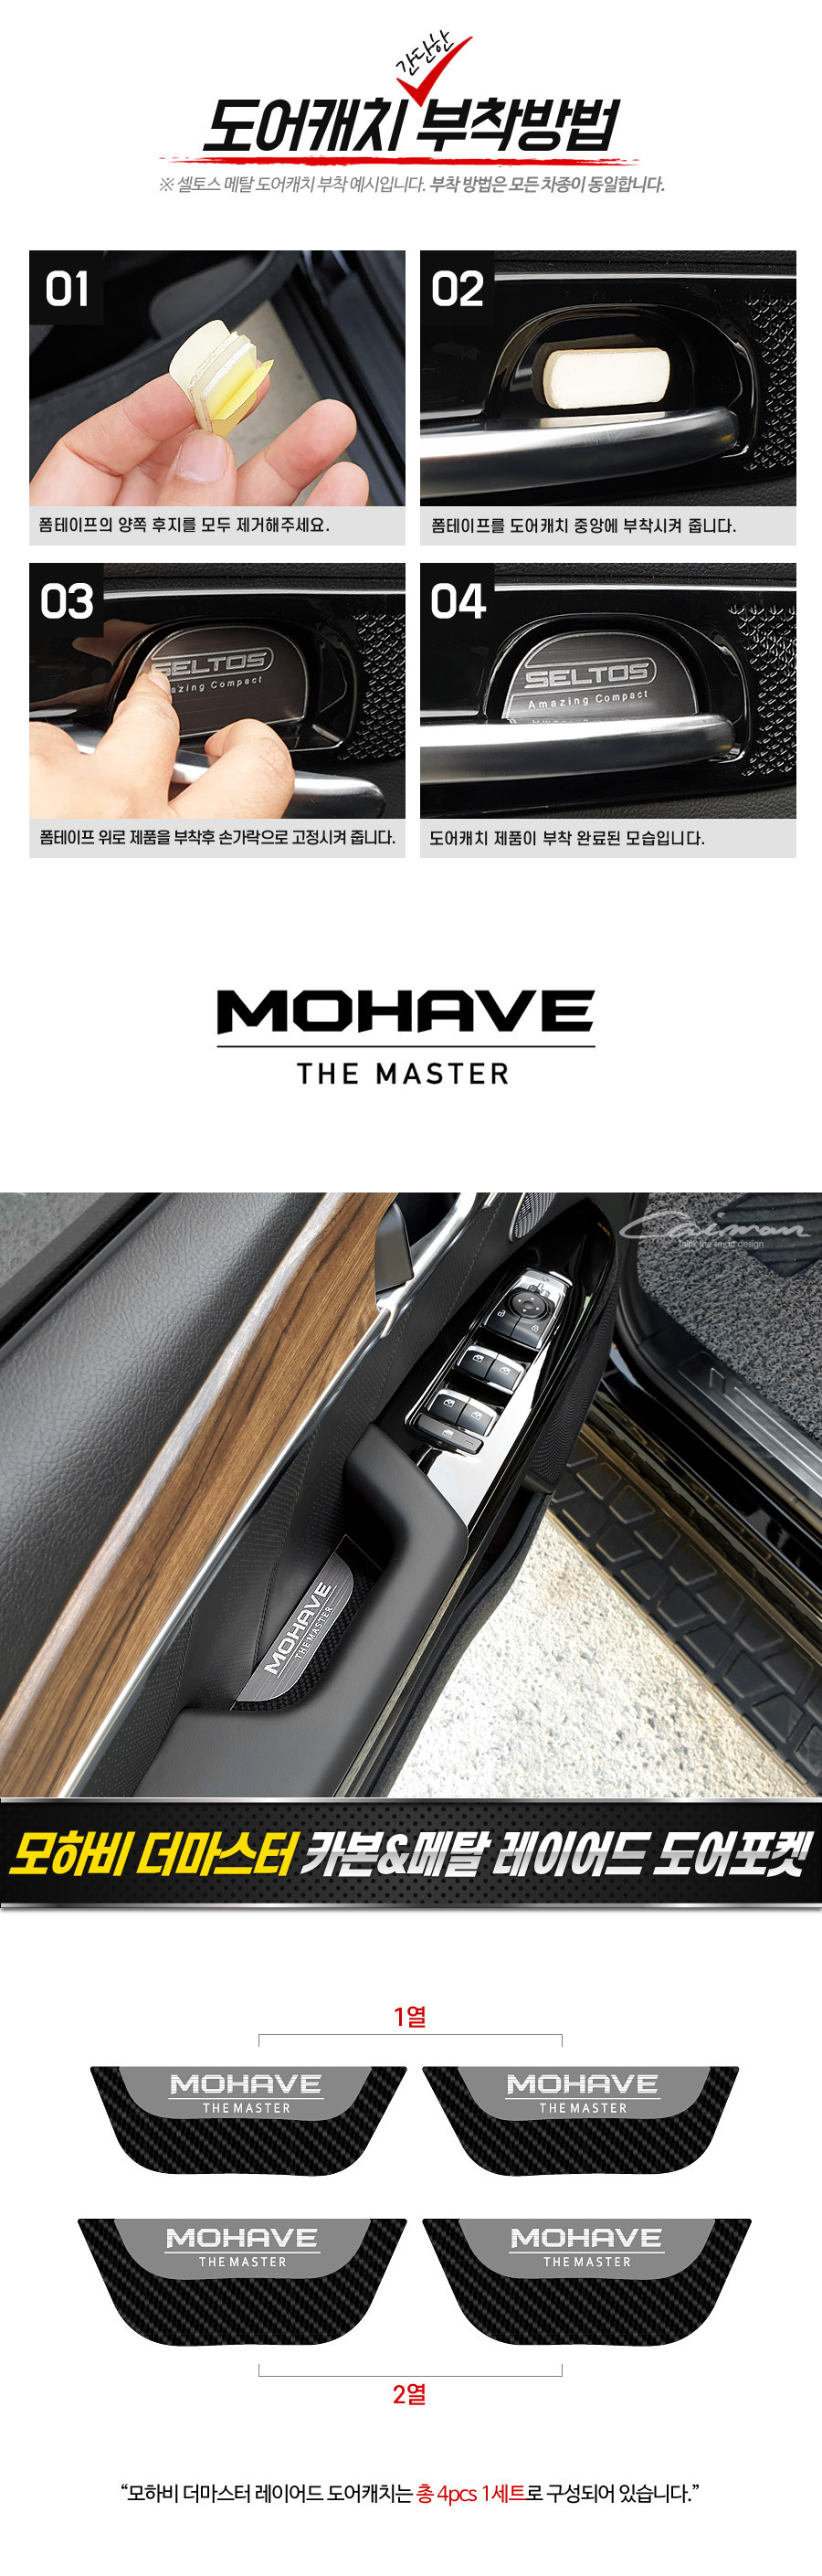 mohave-the-master-layered-cup-door_07.jpg